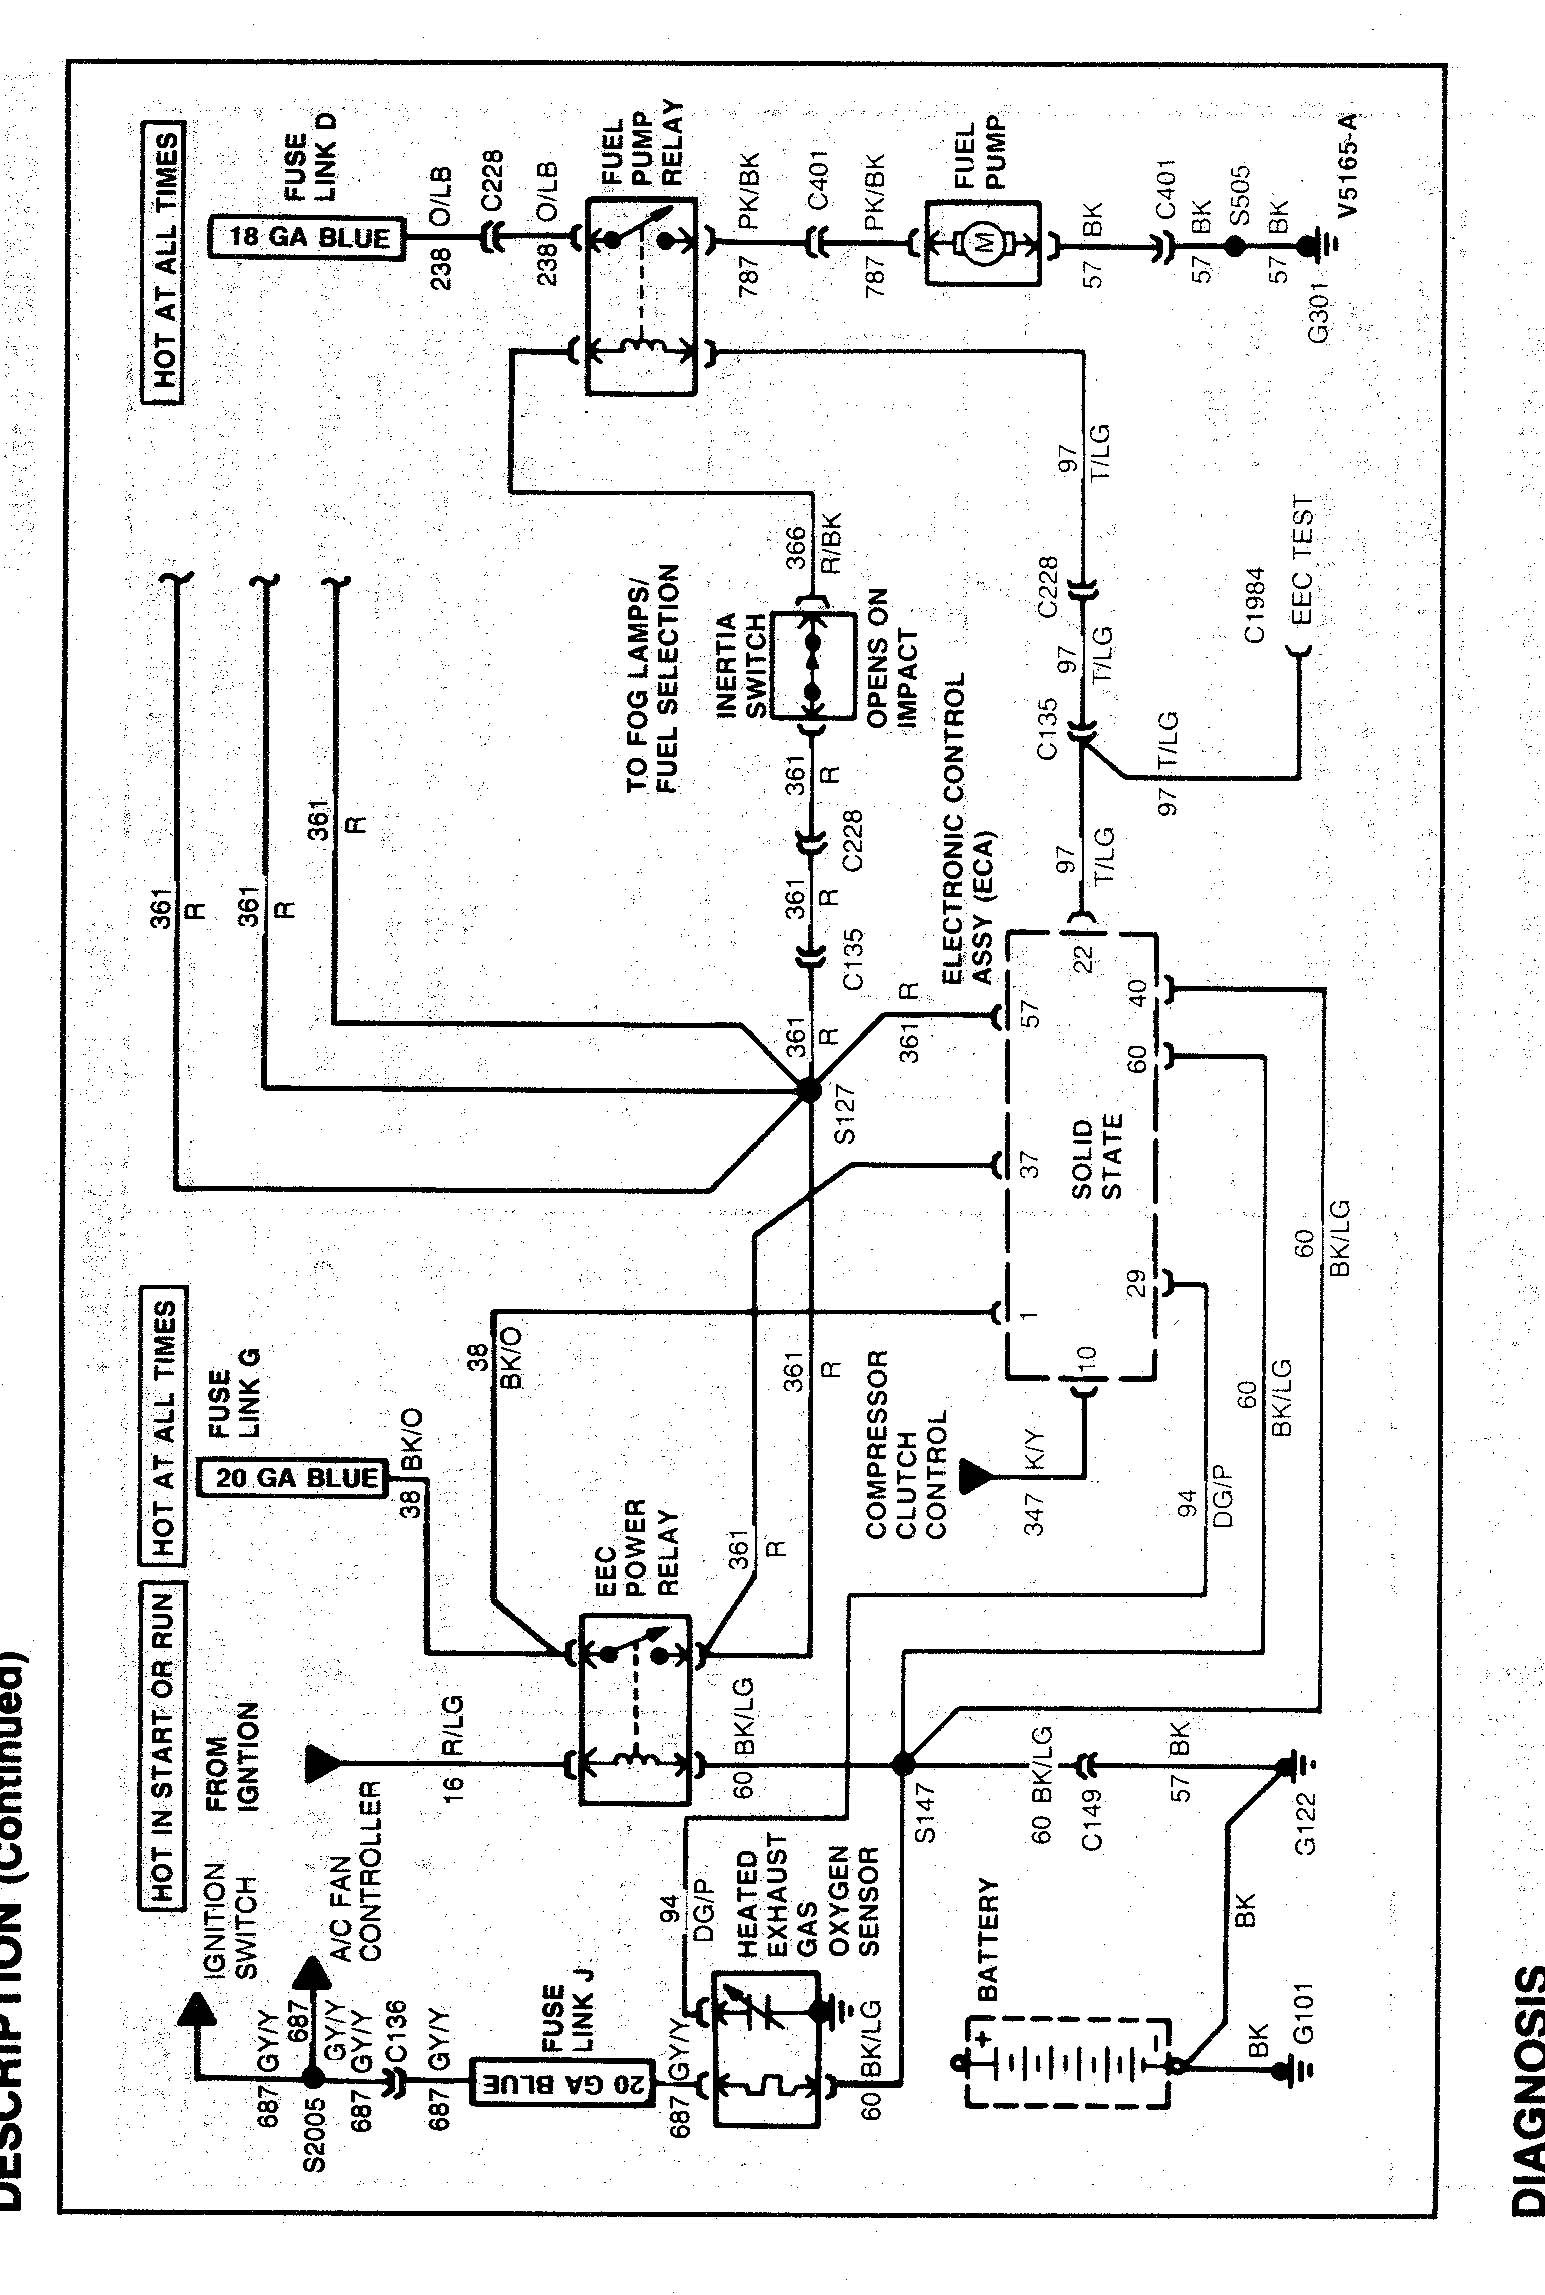 93 Mustang Fuel Pump Wiring Diagram Wiring Diagram